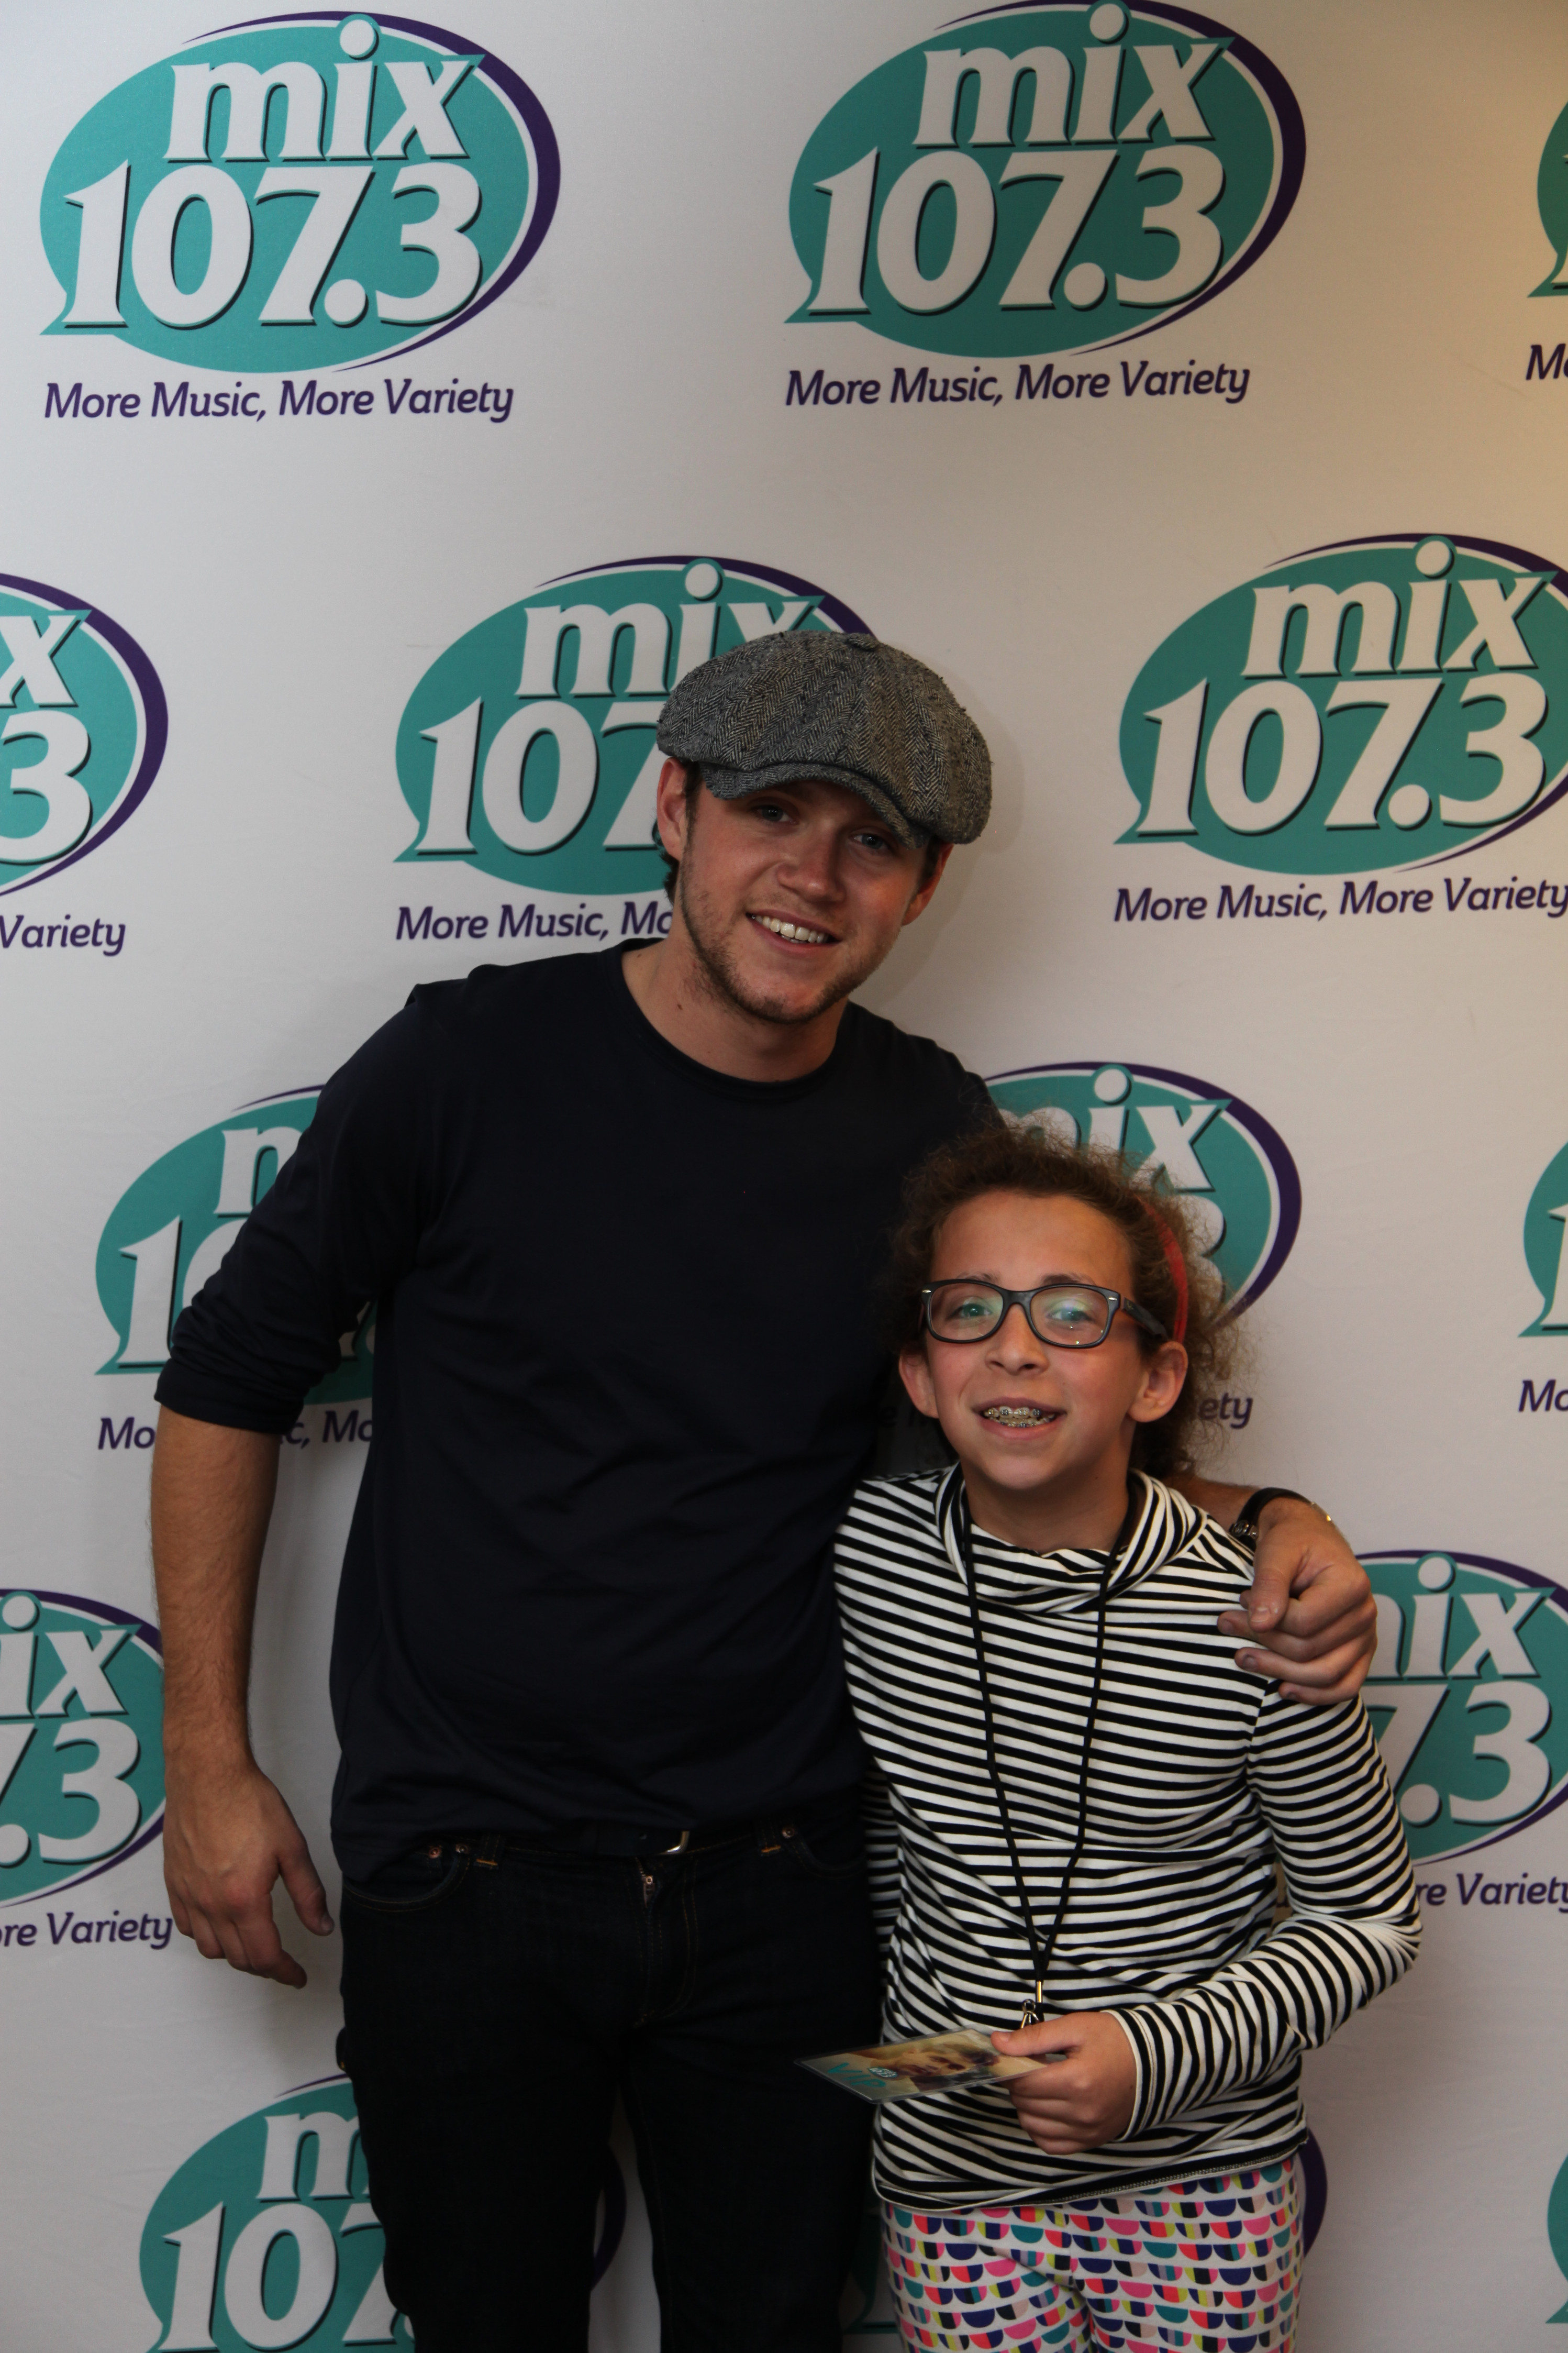 Niall horan meets mix1073 dmvips wrqx fm posted on may 23 2017 m4hsunfo